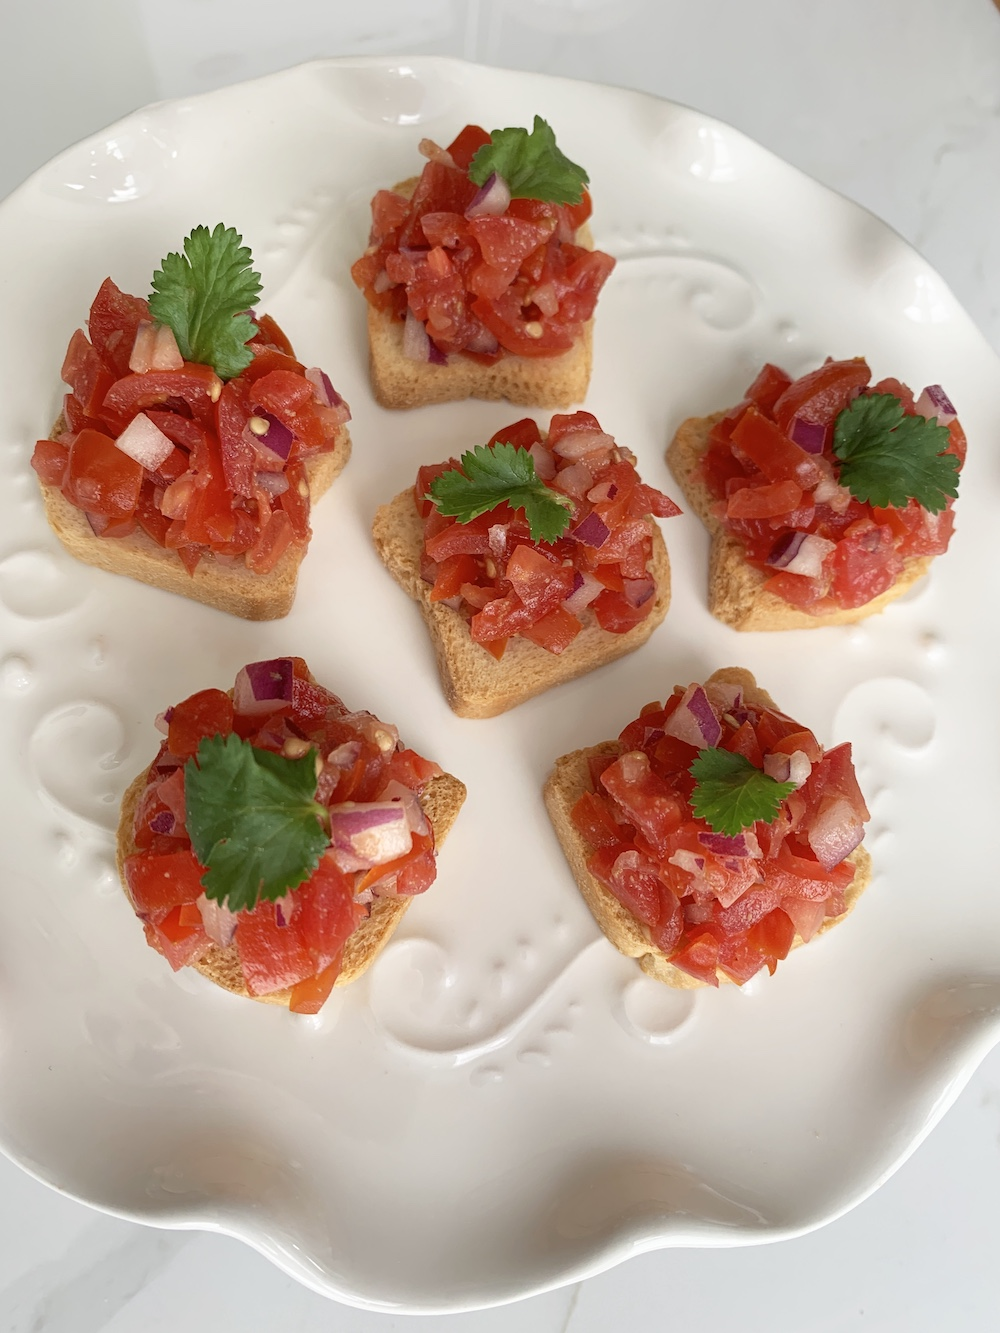 Grape Tomato Bruschetta, a Quick and Easy Appetizer Grape Tomato Bruschetta Fini #Bruschetta #GrapeTomatoes #TomatoBruschetta #QuickandEasy #BudgetFriendly #Affordable #Healthy #Appetizer #AffordableFood #SaveTime #SaveMoney